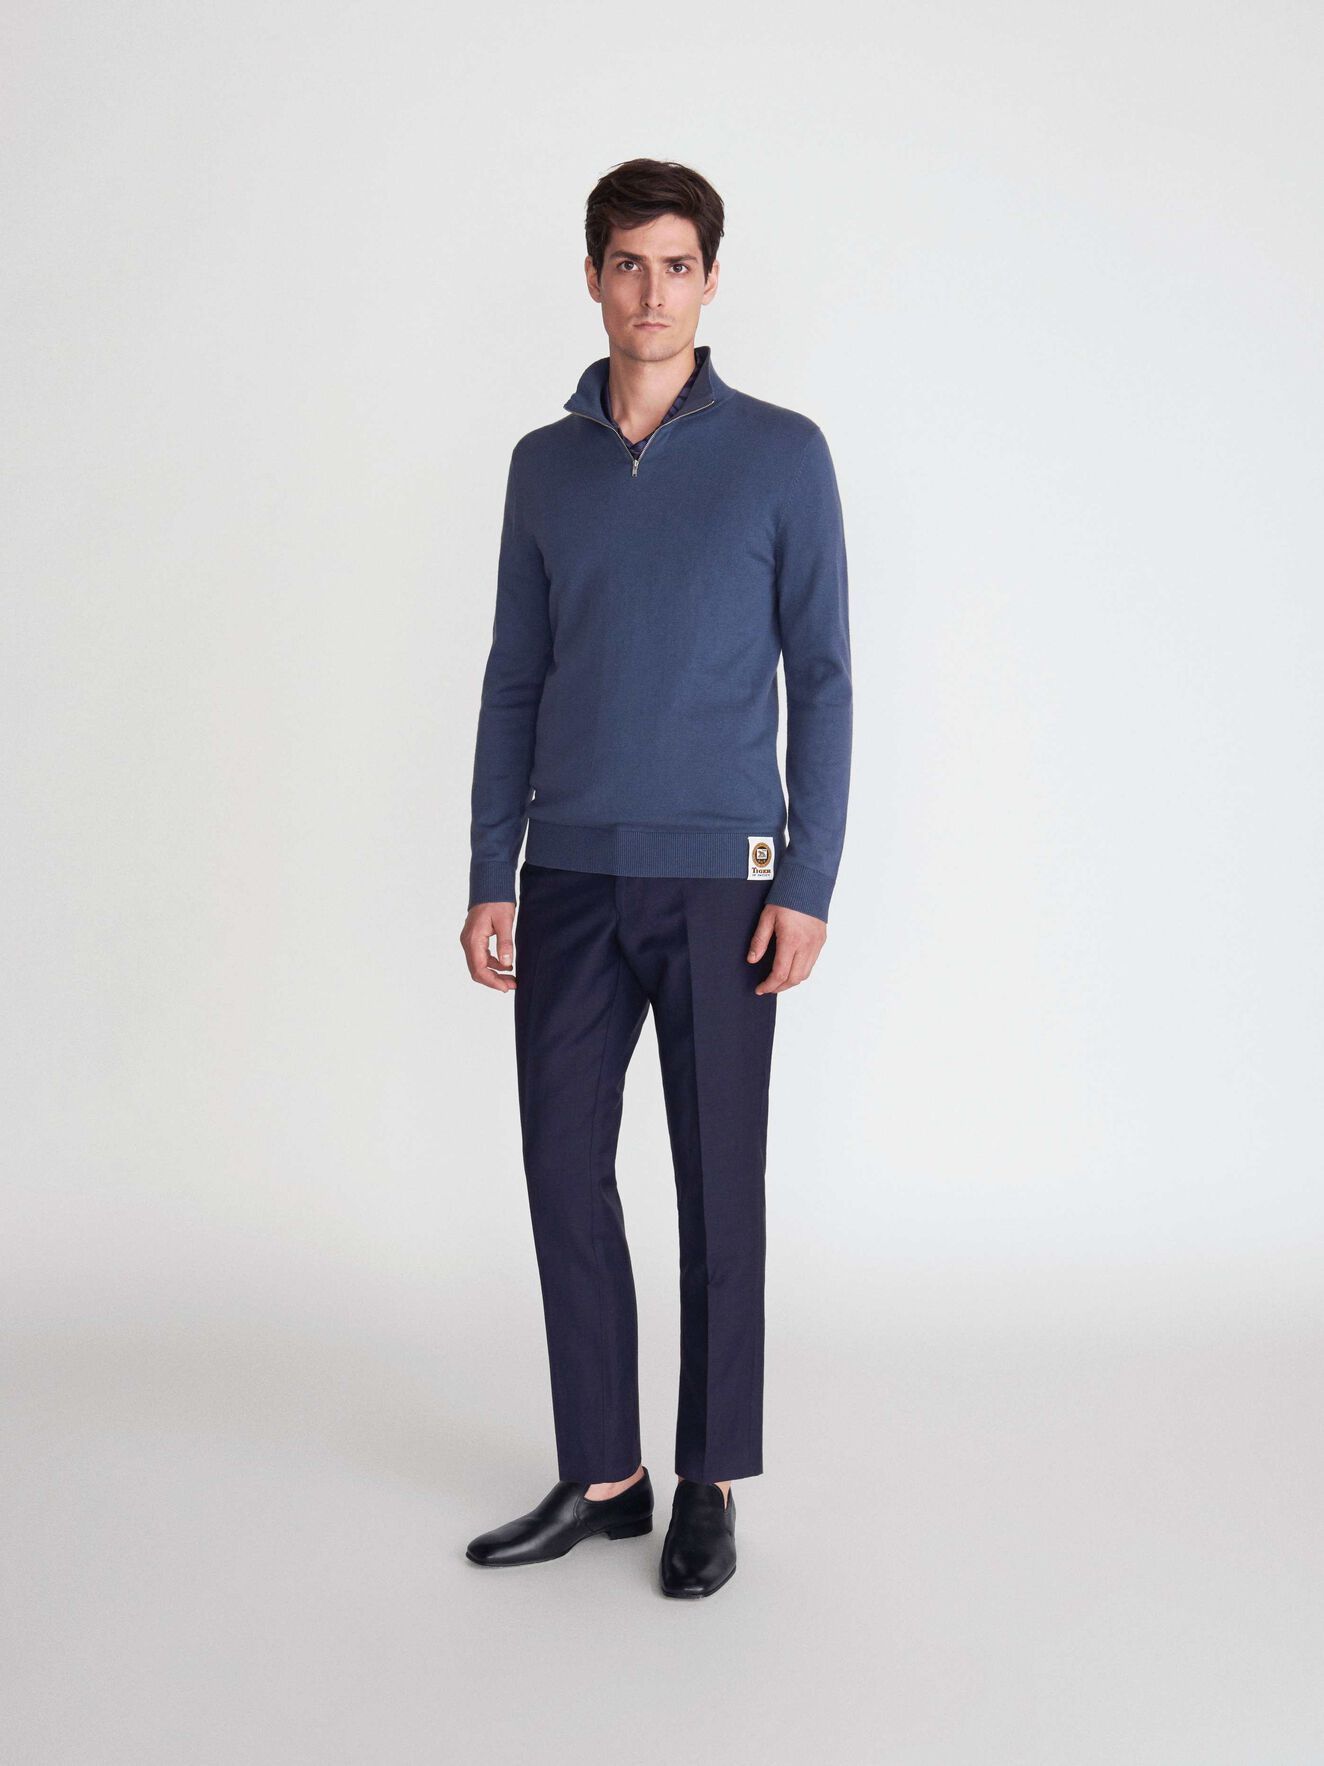 Nemus Pullover in Soft blue from Tiger of Sweden